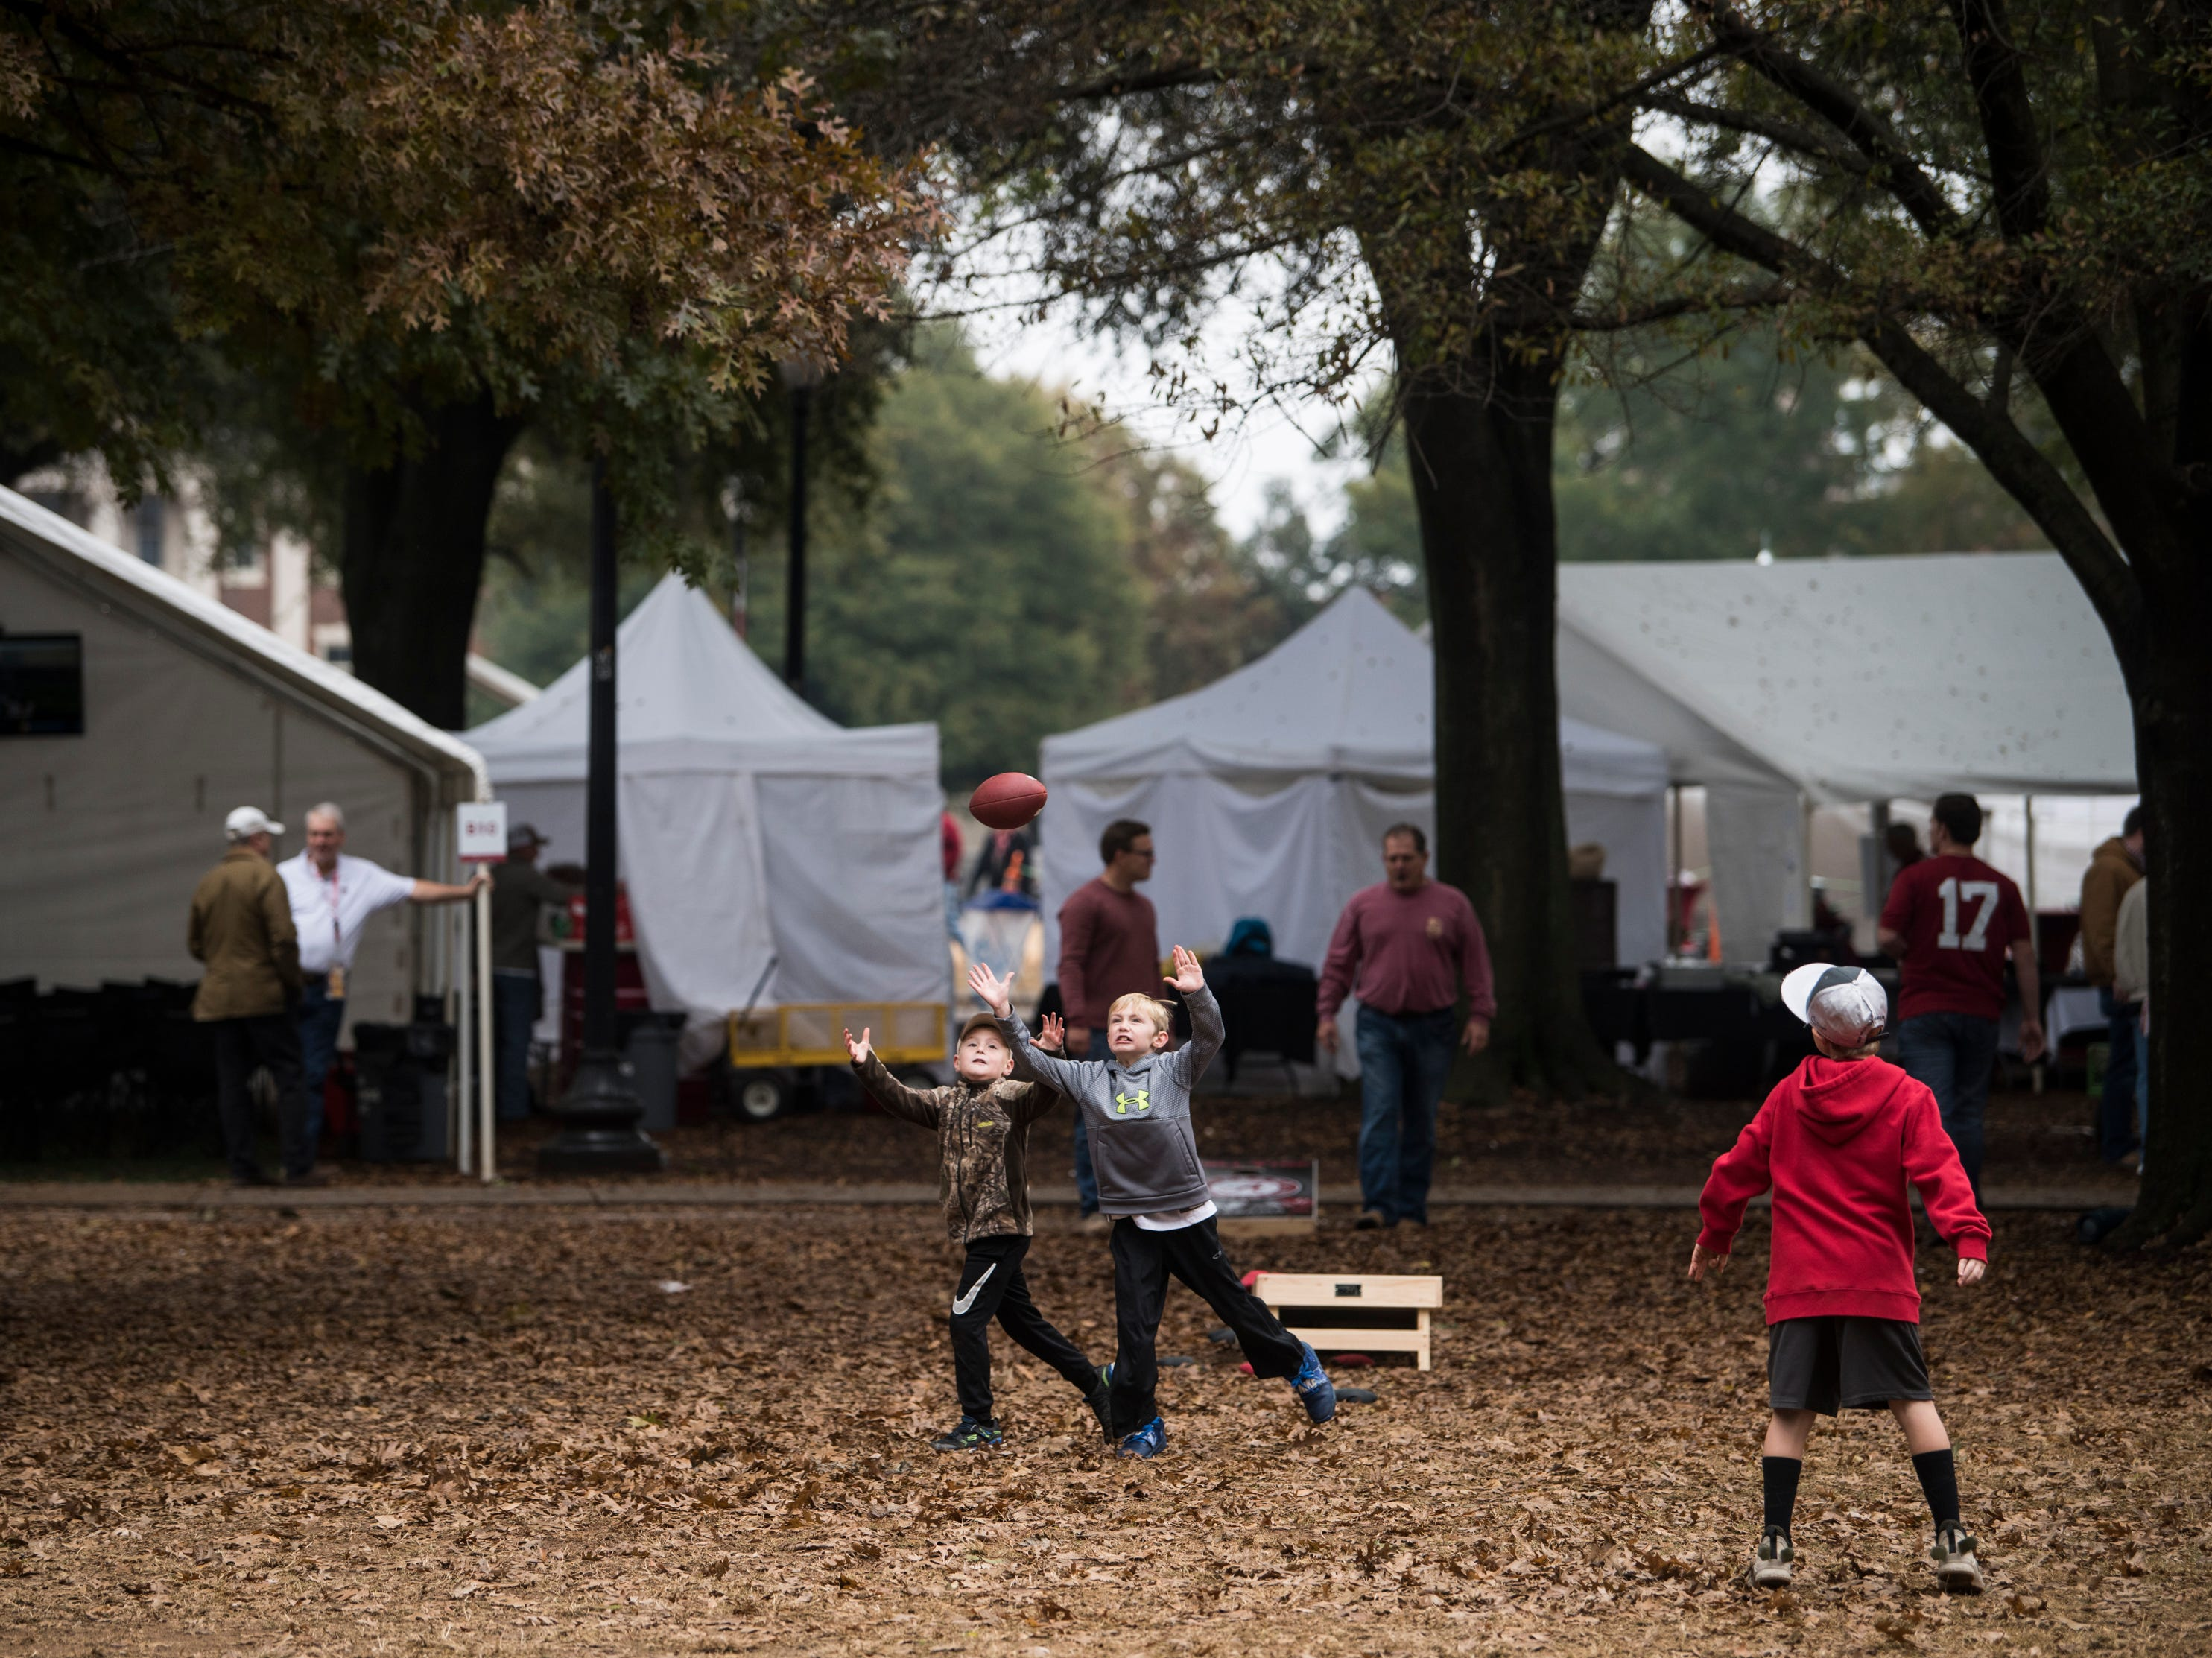 Fans toss around a football outside Bryant-Denny Stadium in Tuscaloosa, Ala., on Saturday, Nov. 24, 2018.